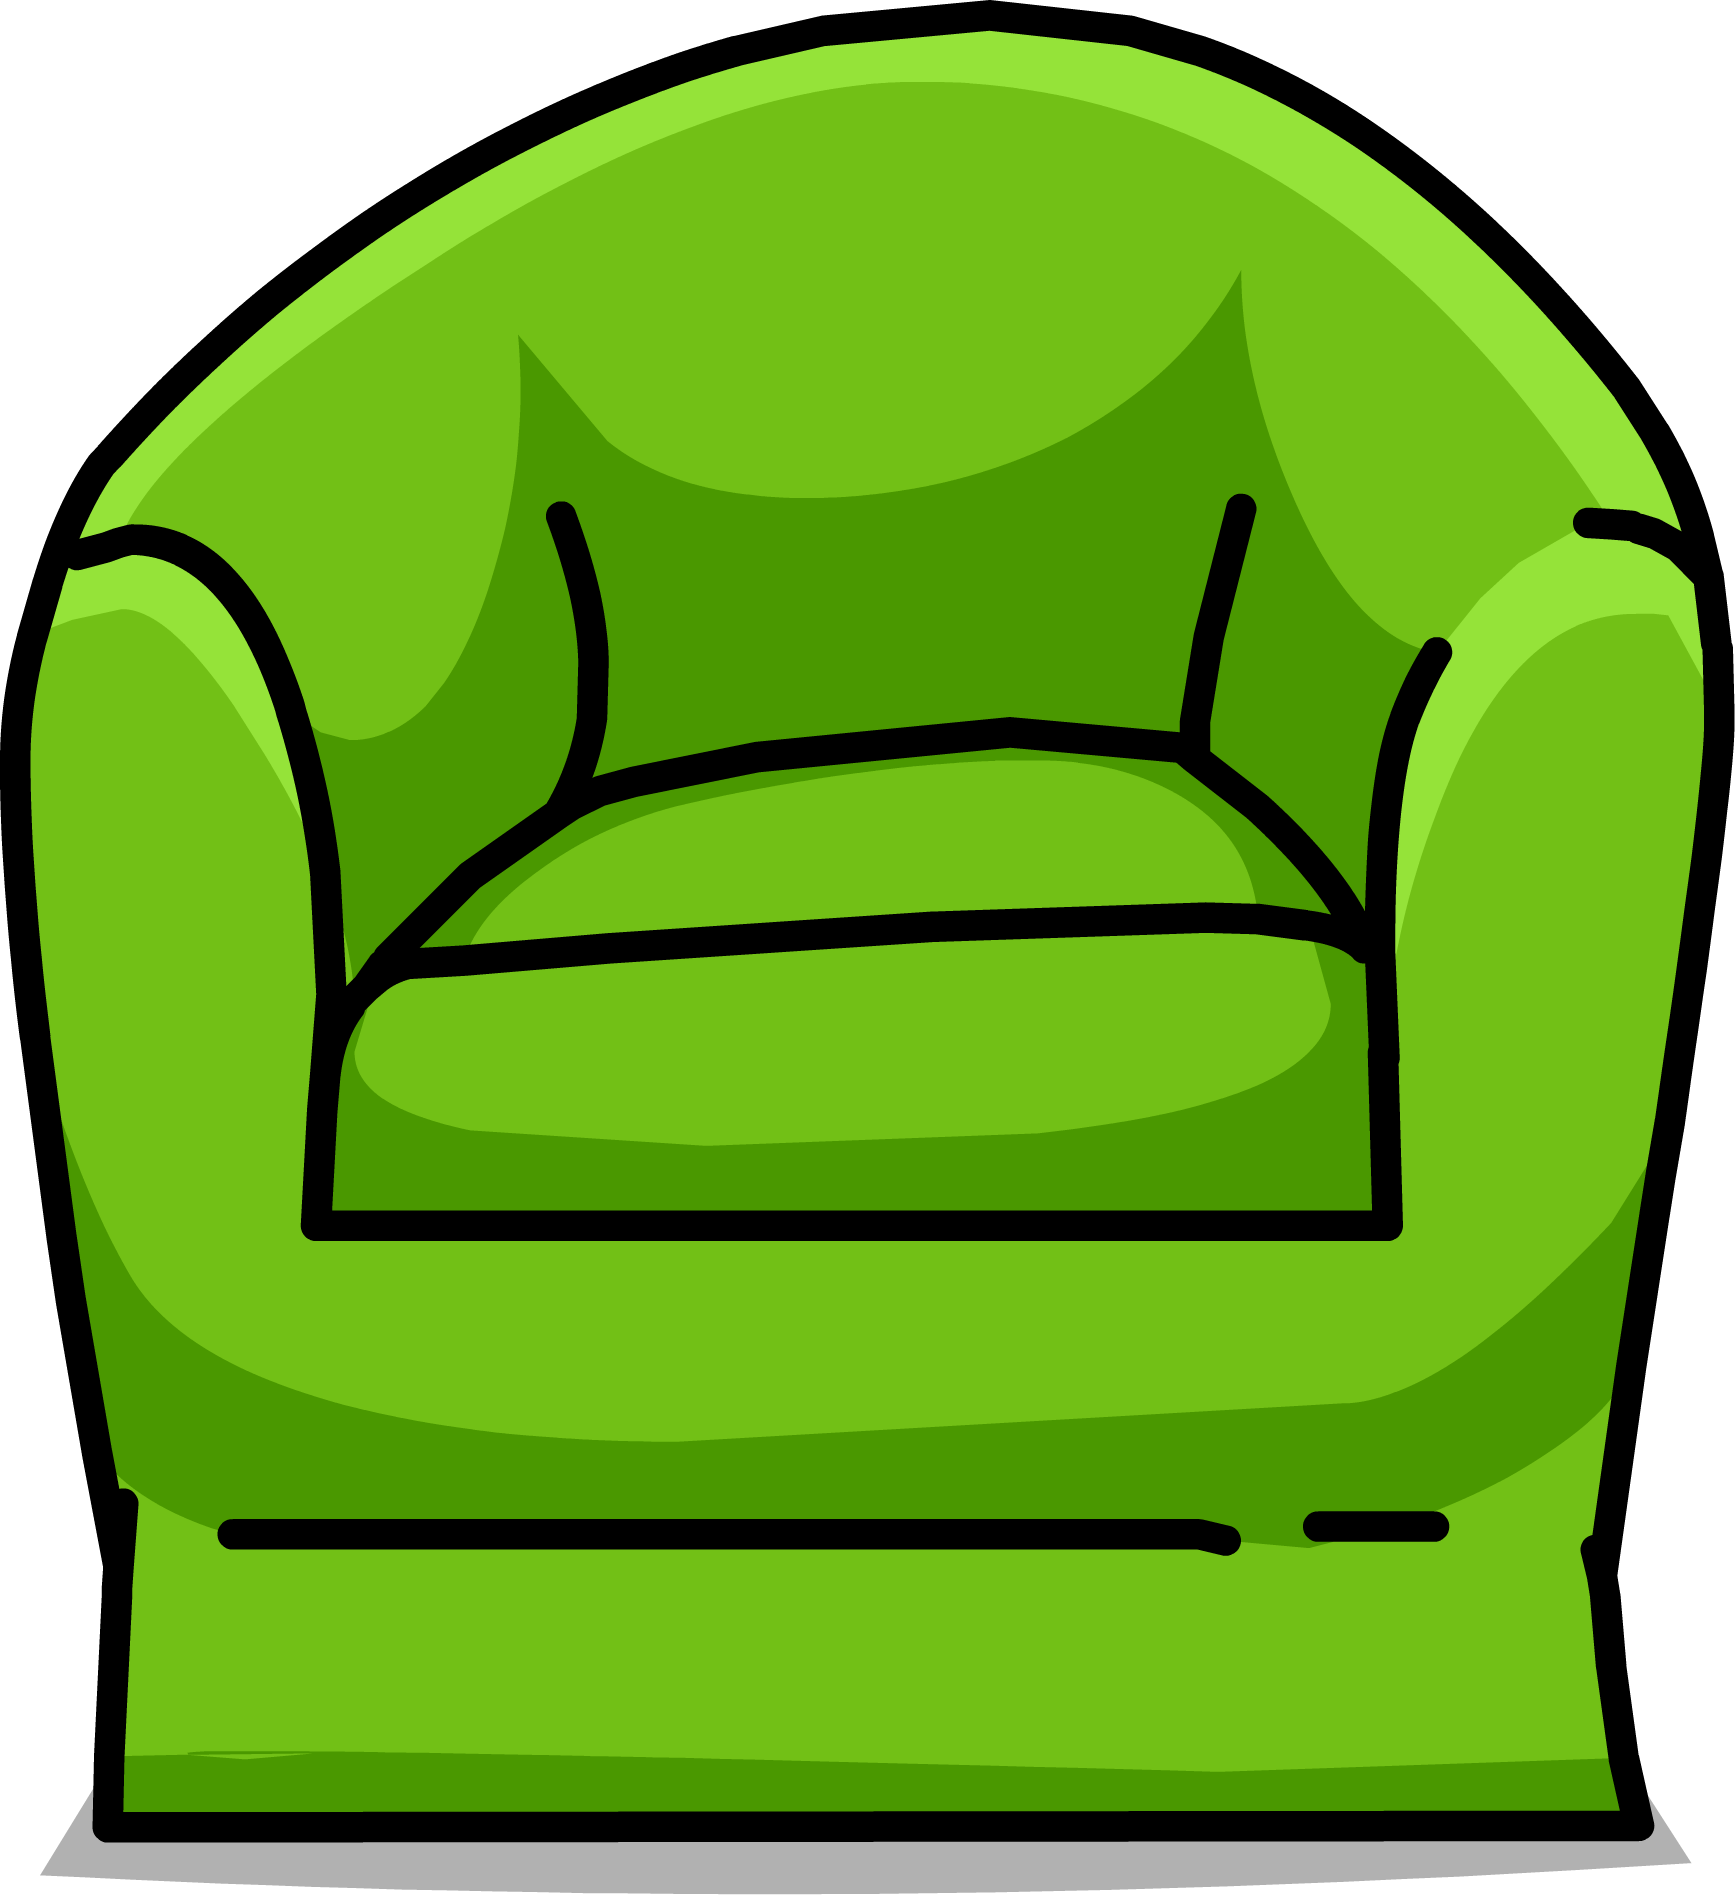 Scoop chair club penguin. Couch clipart green couch